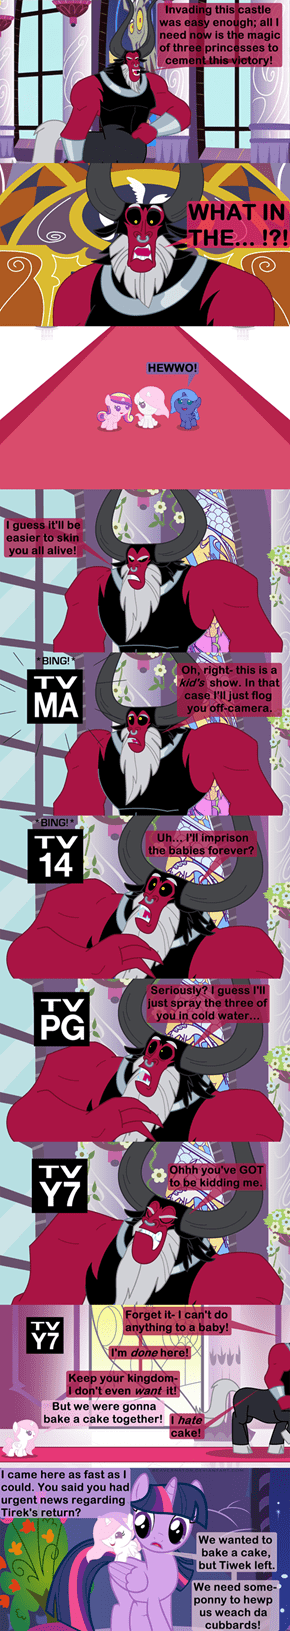 It's Hard to Be a Villain in Equestria